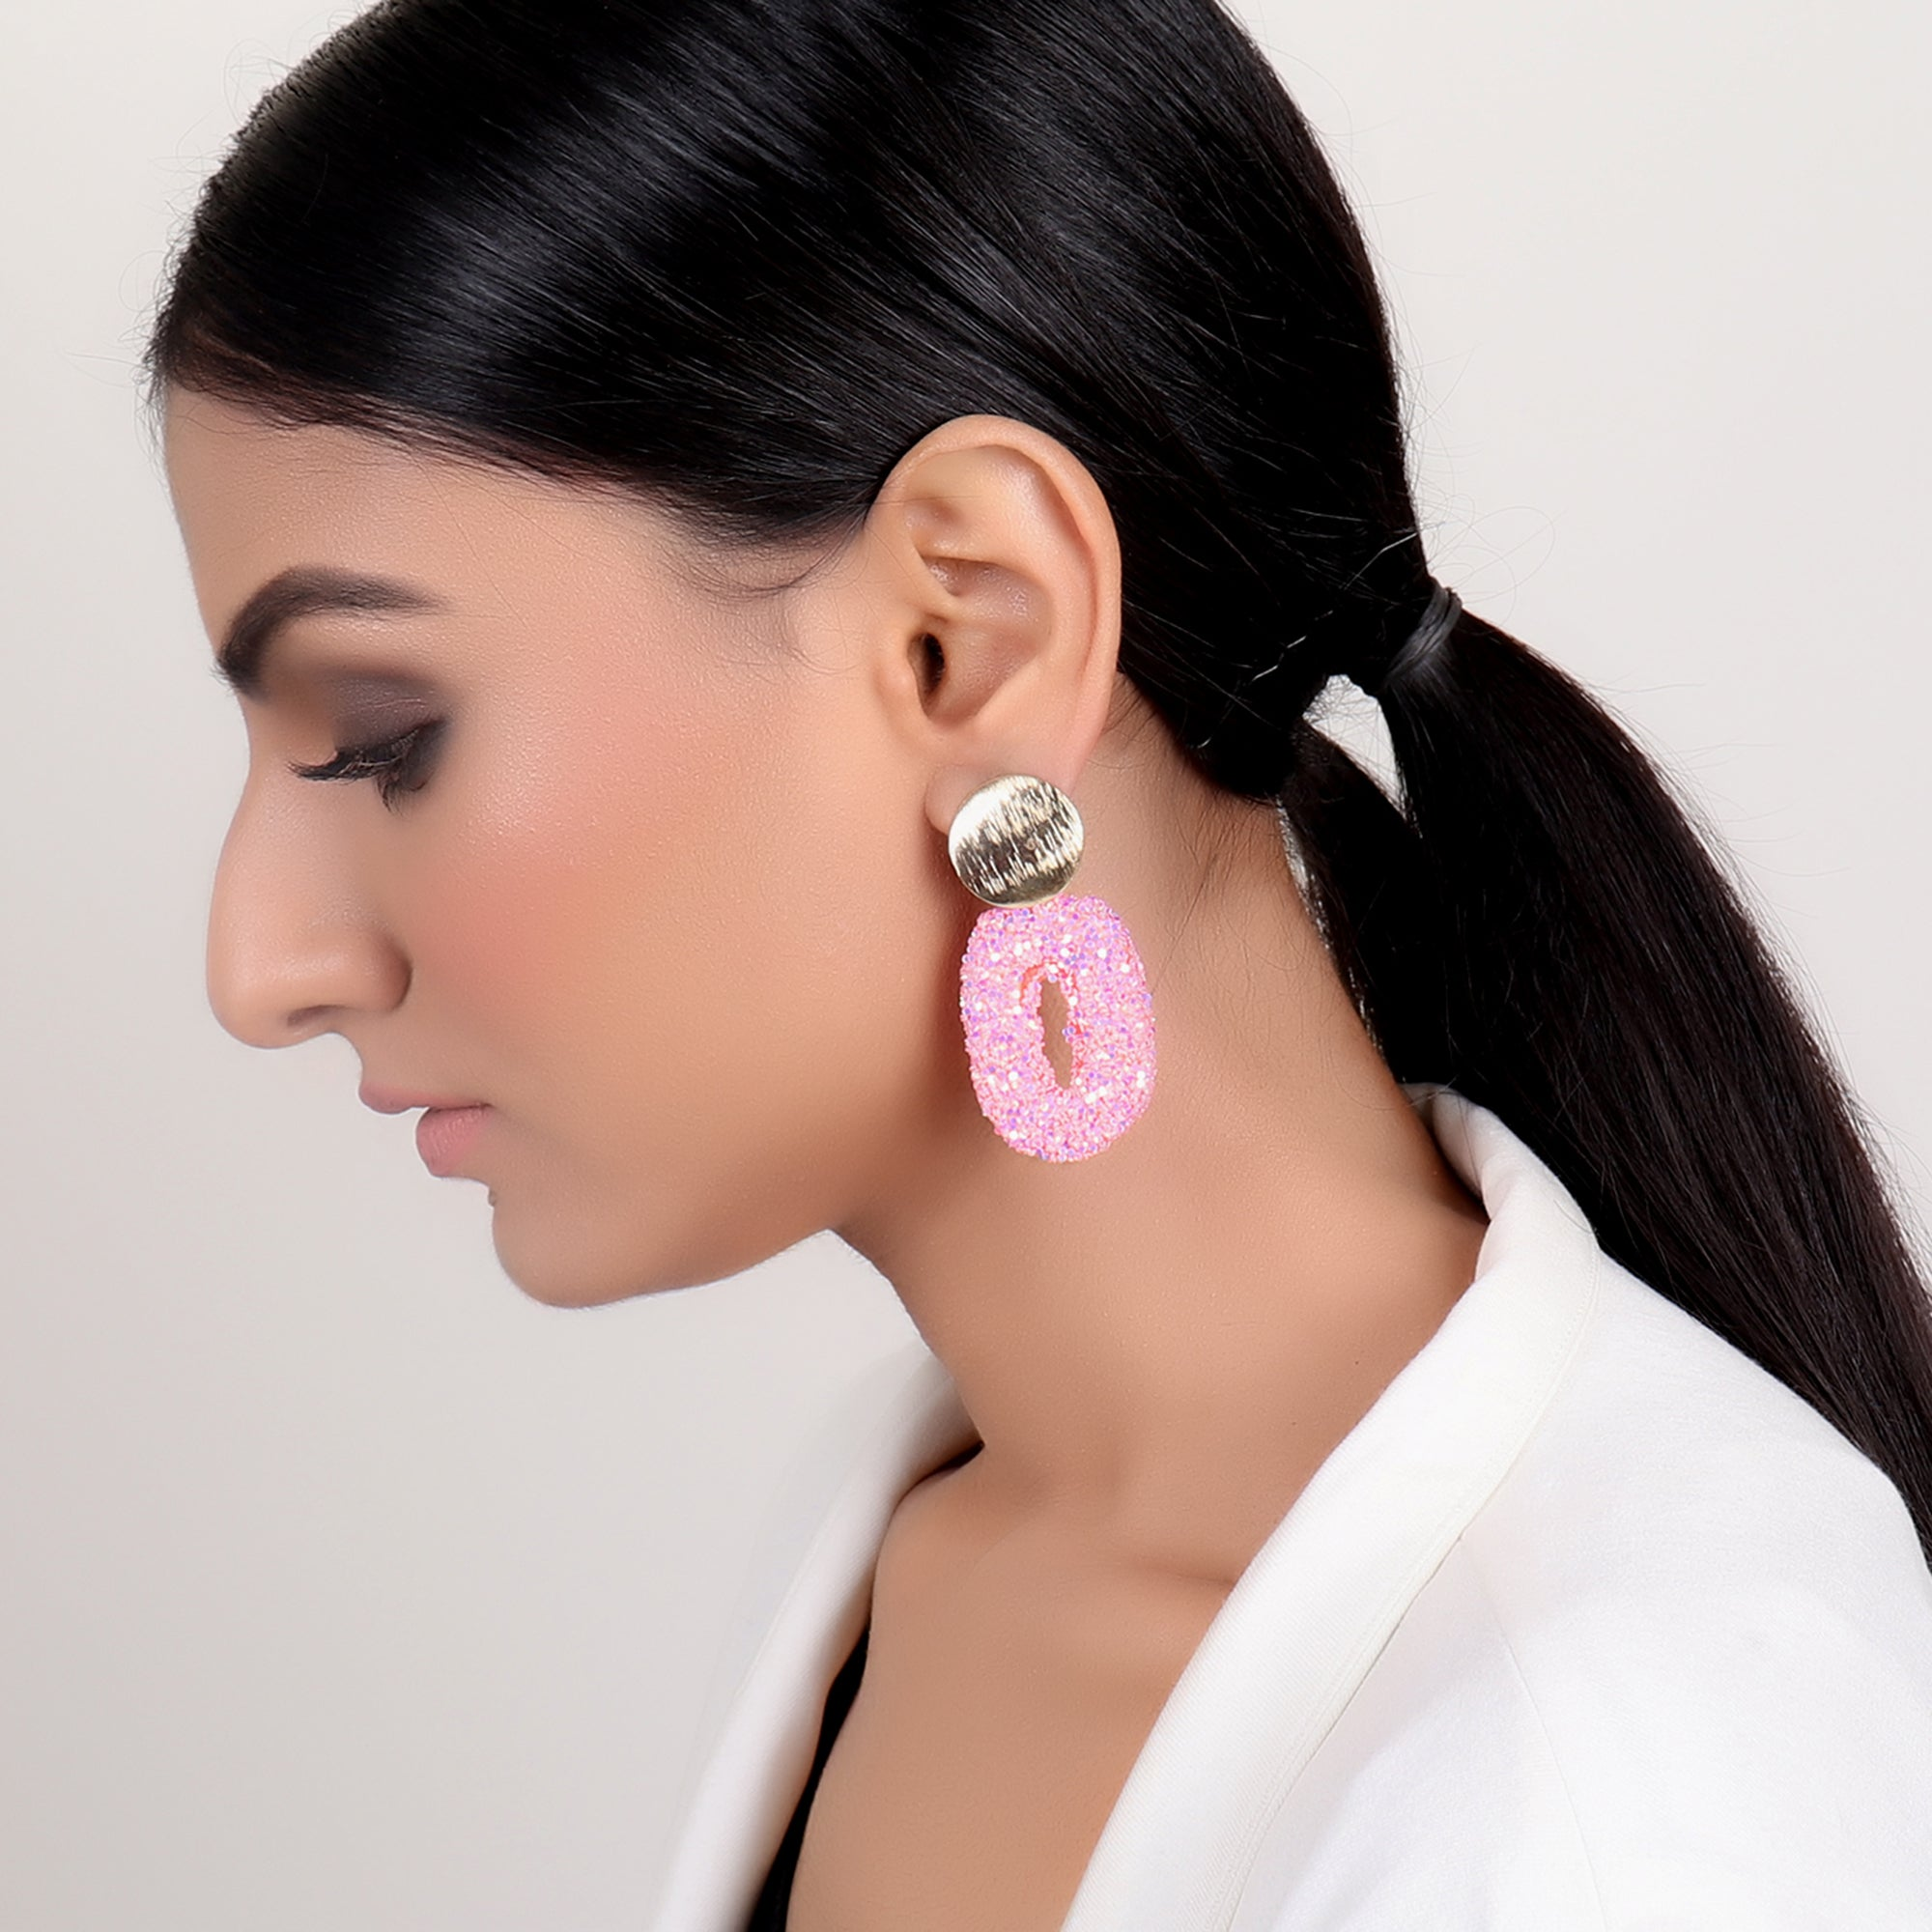 Earrings,Dazzling Earrings in pink - Cippele Multi Store